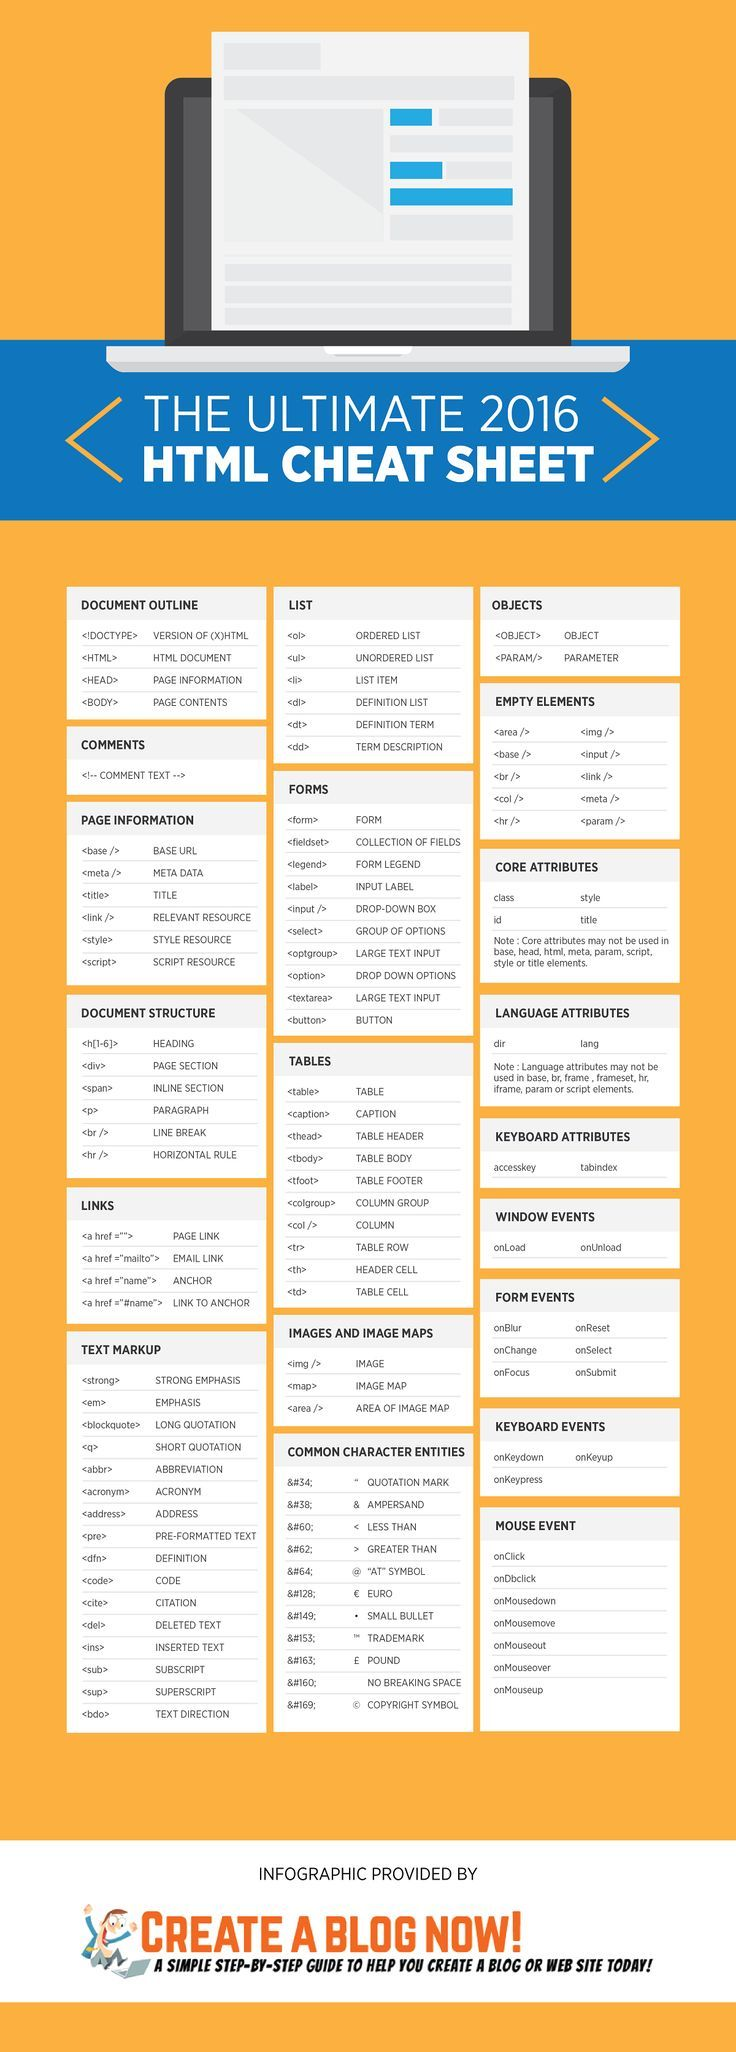 The Ultimate 2016 HTML Cheat Sheet #Infographic – Joël